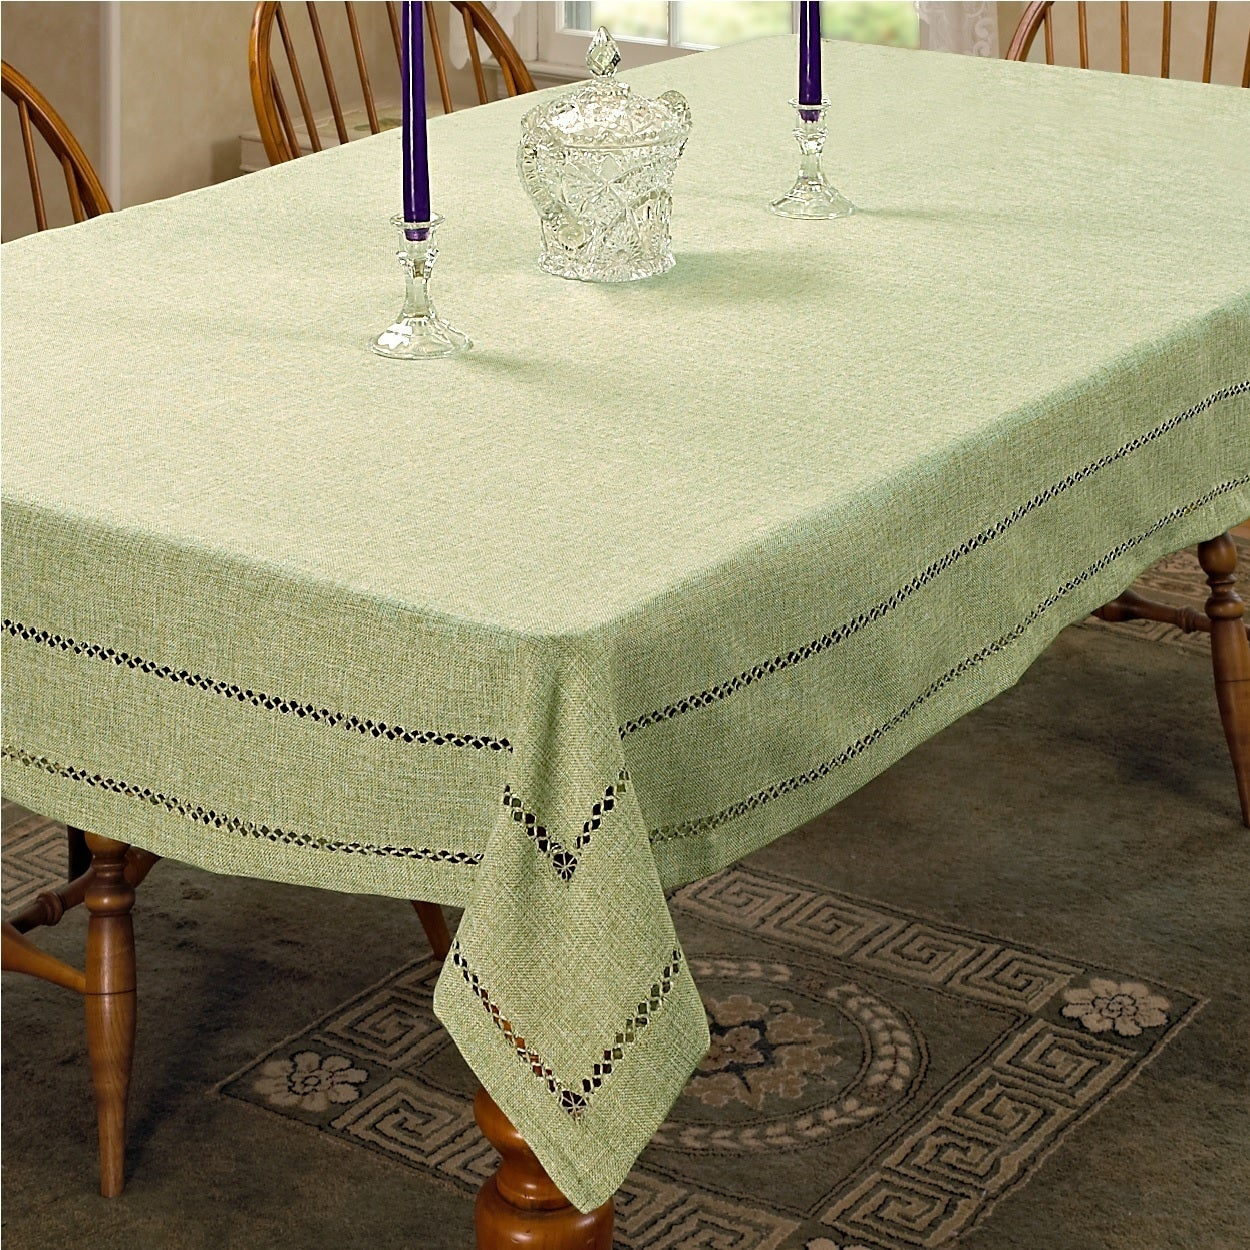 Violet Linen Hem Sch Embroidered Design Tablecloth Orted Colors On Free Shipping Orders Over 45 18945749